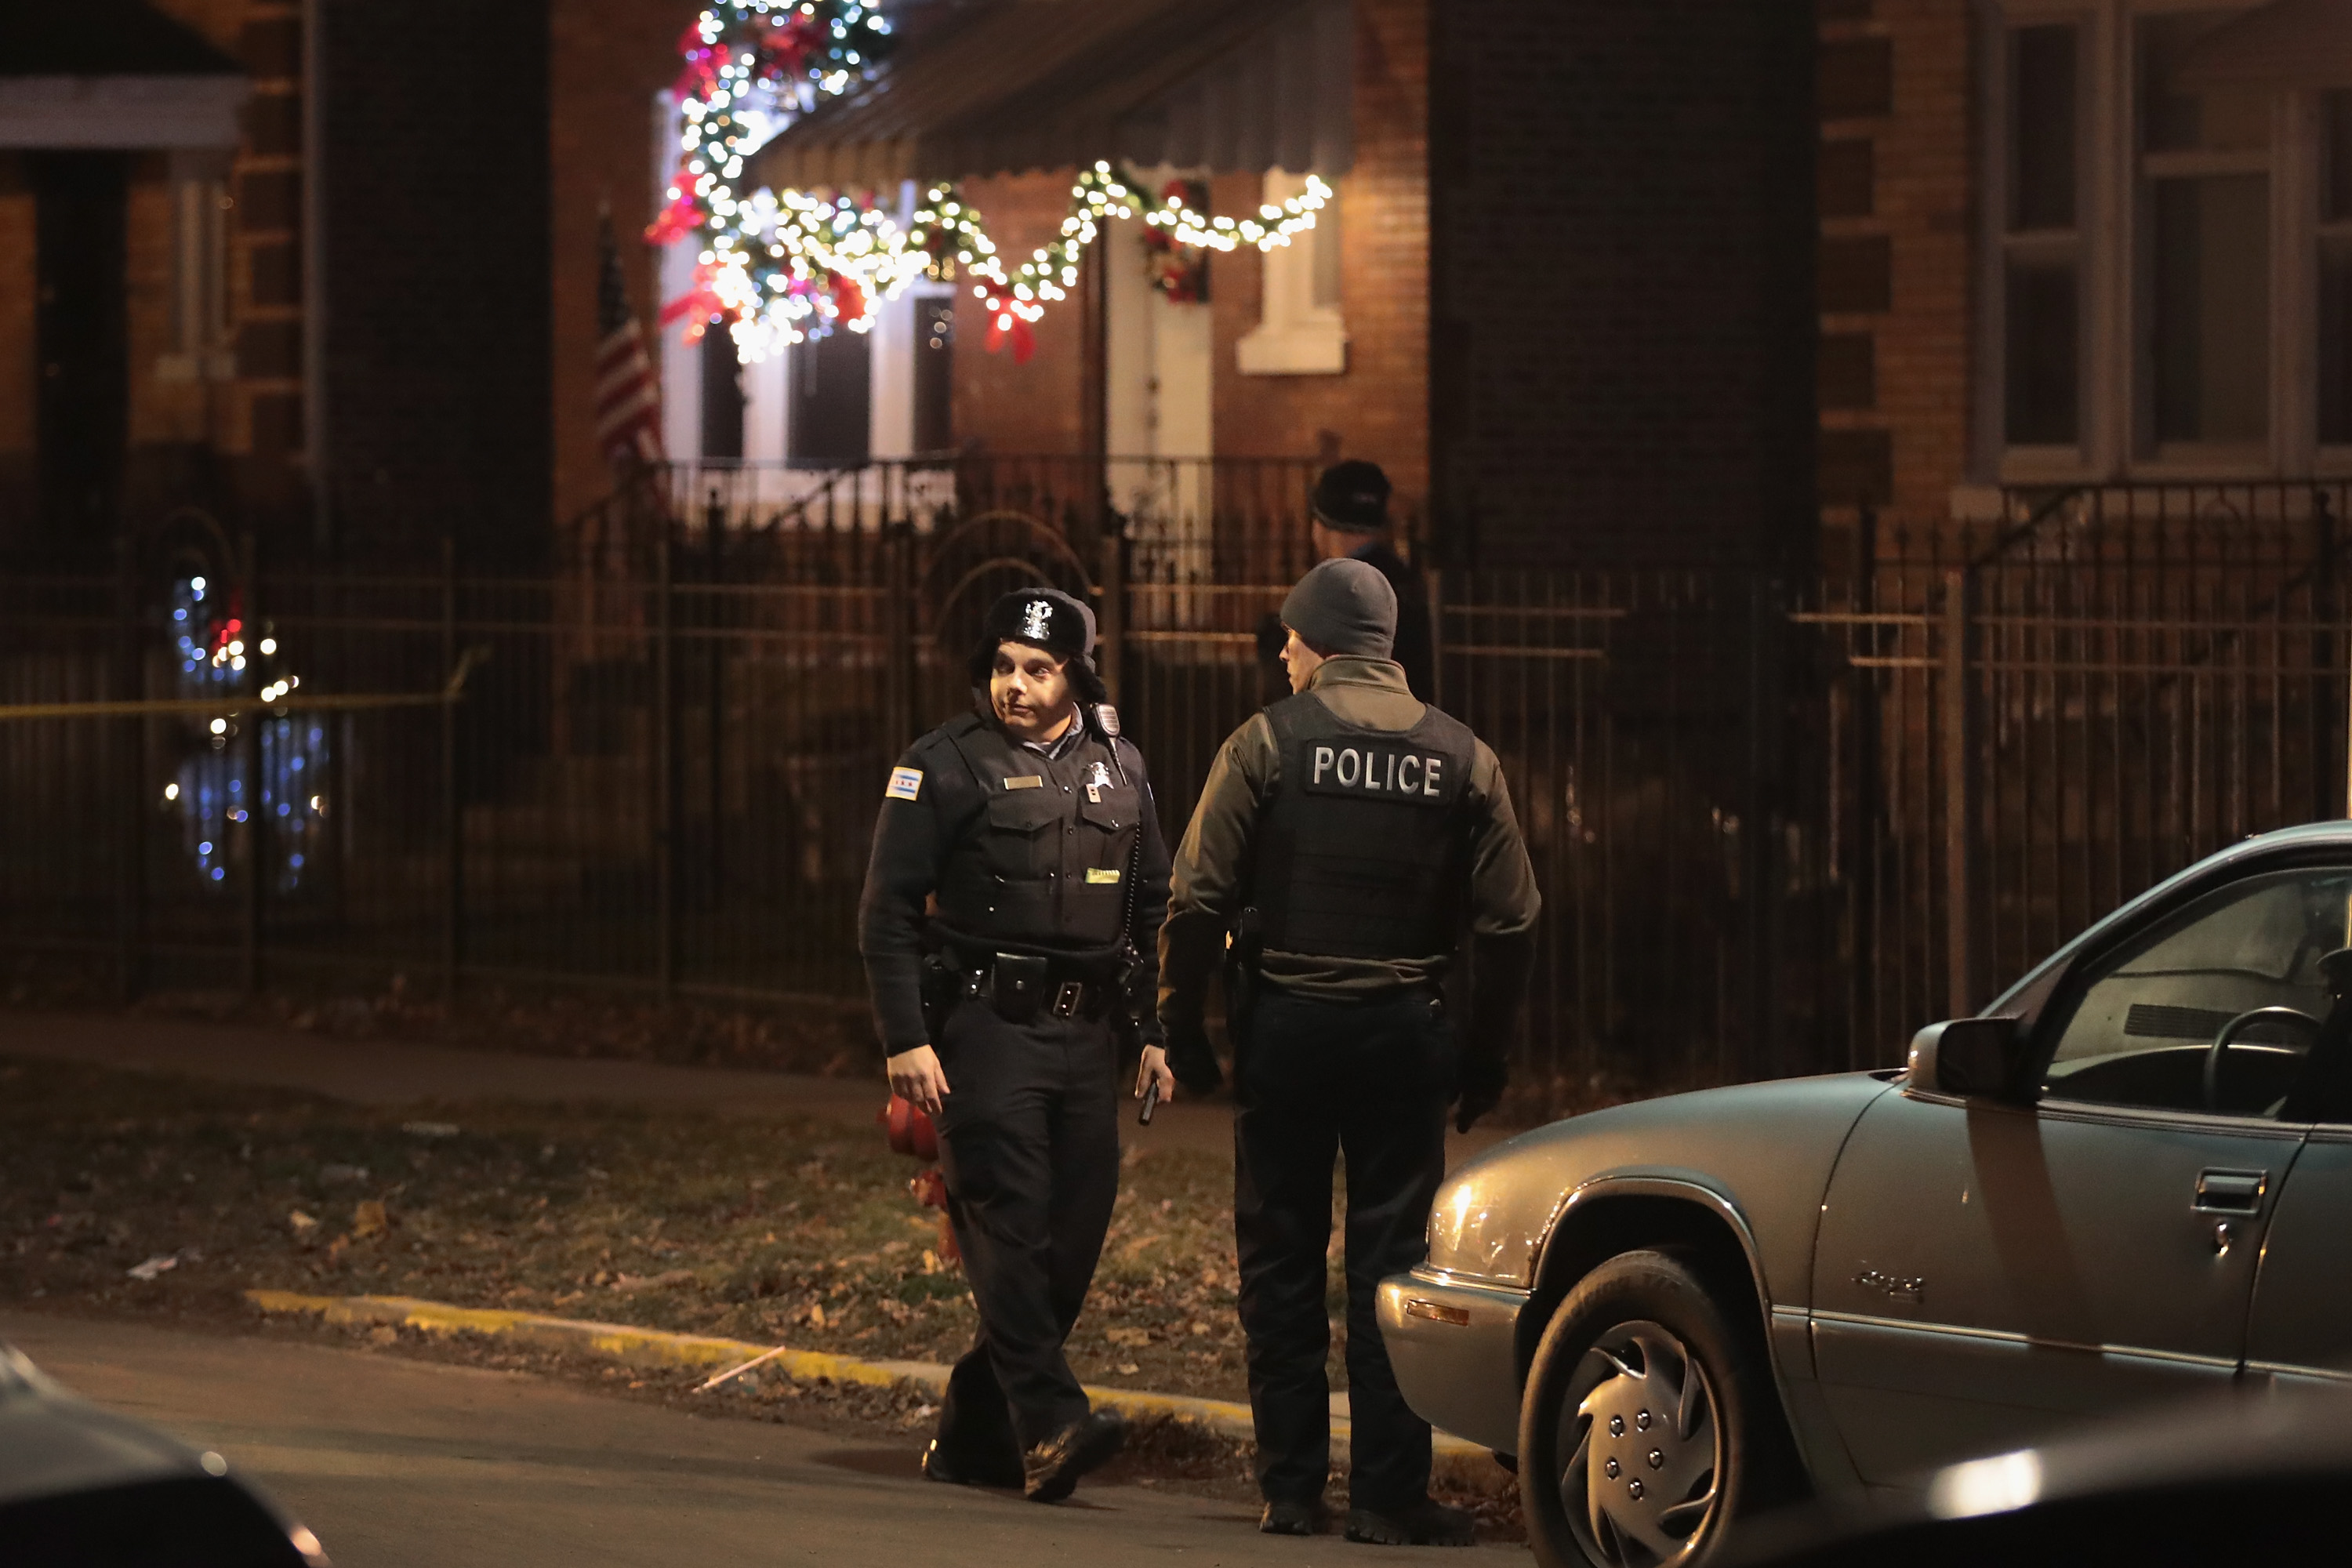 Chicago police on patrol.